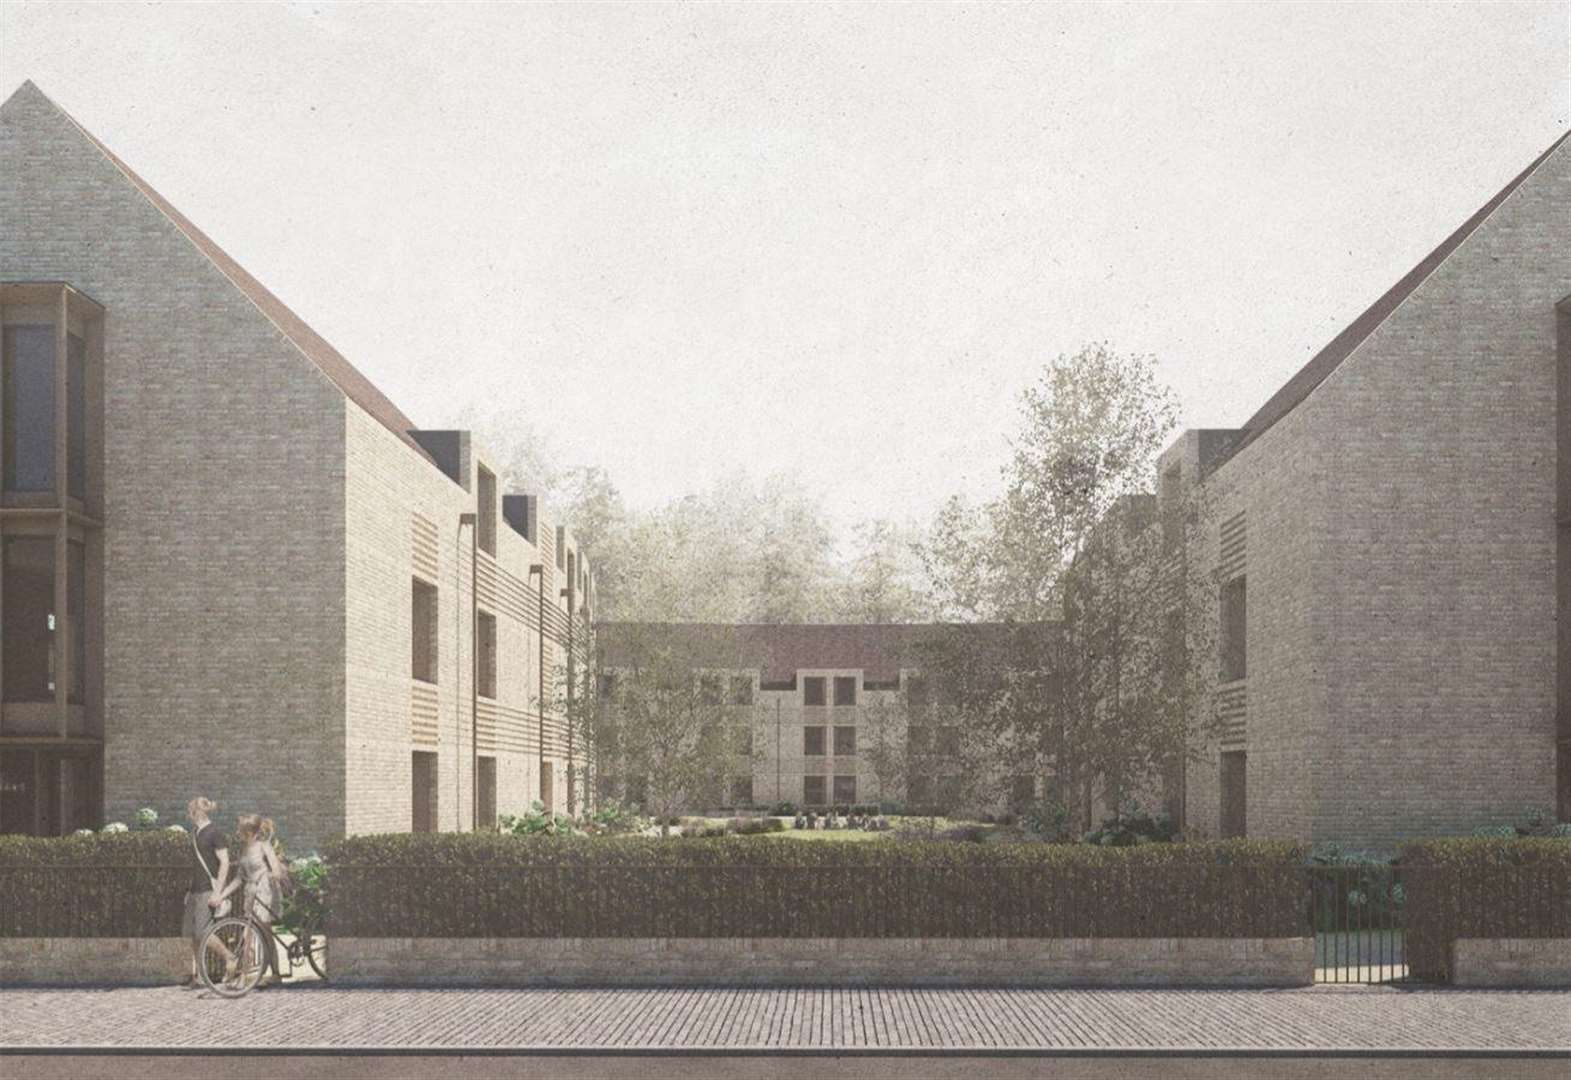 New student accommodation complex planned for Barton Road